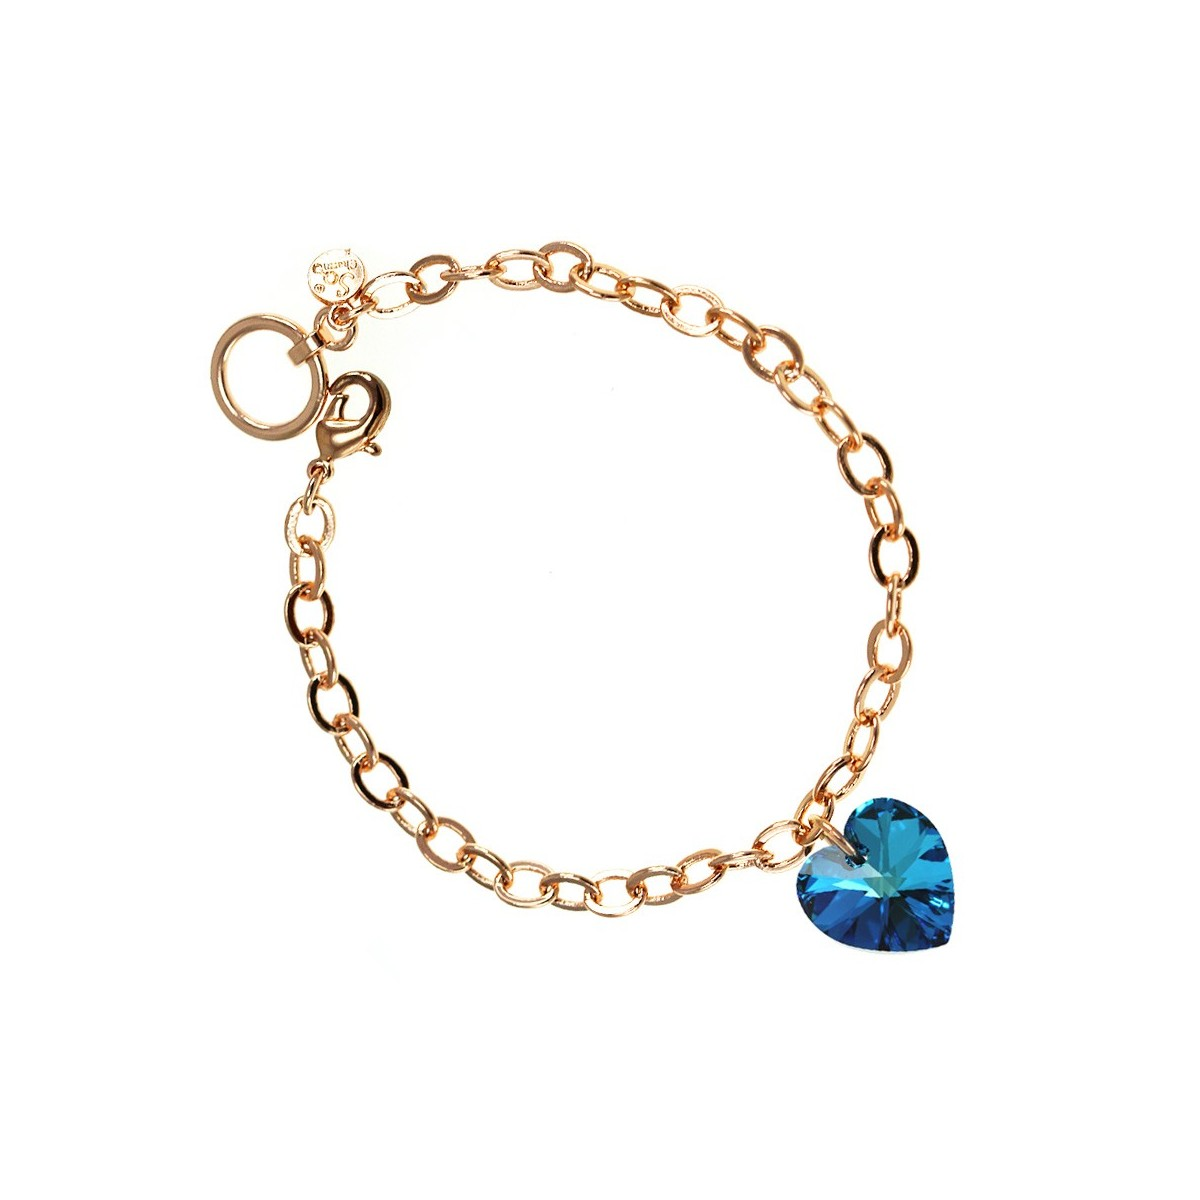 Bracelet plaqué or rose et coeur bleu So Charm made with crystal from Swarovski